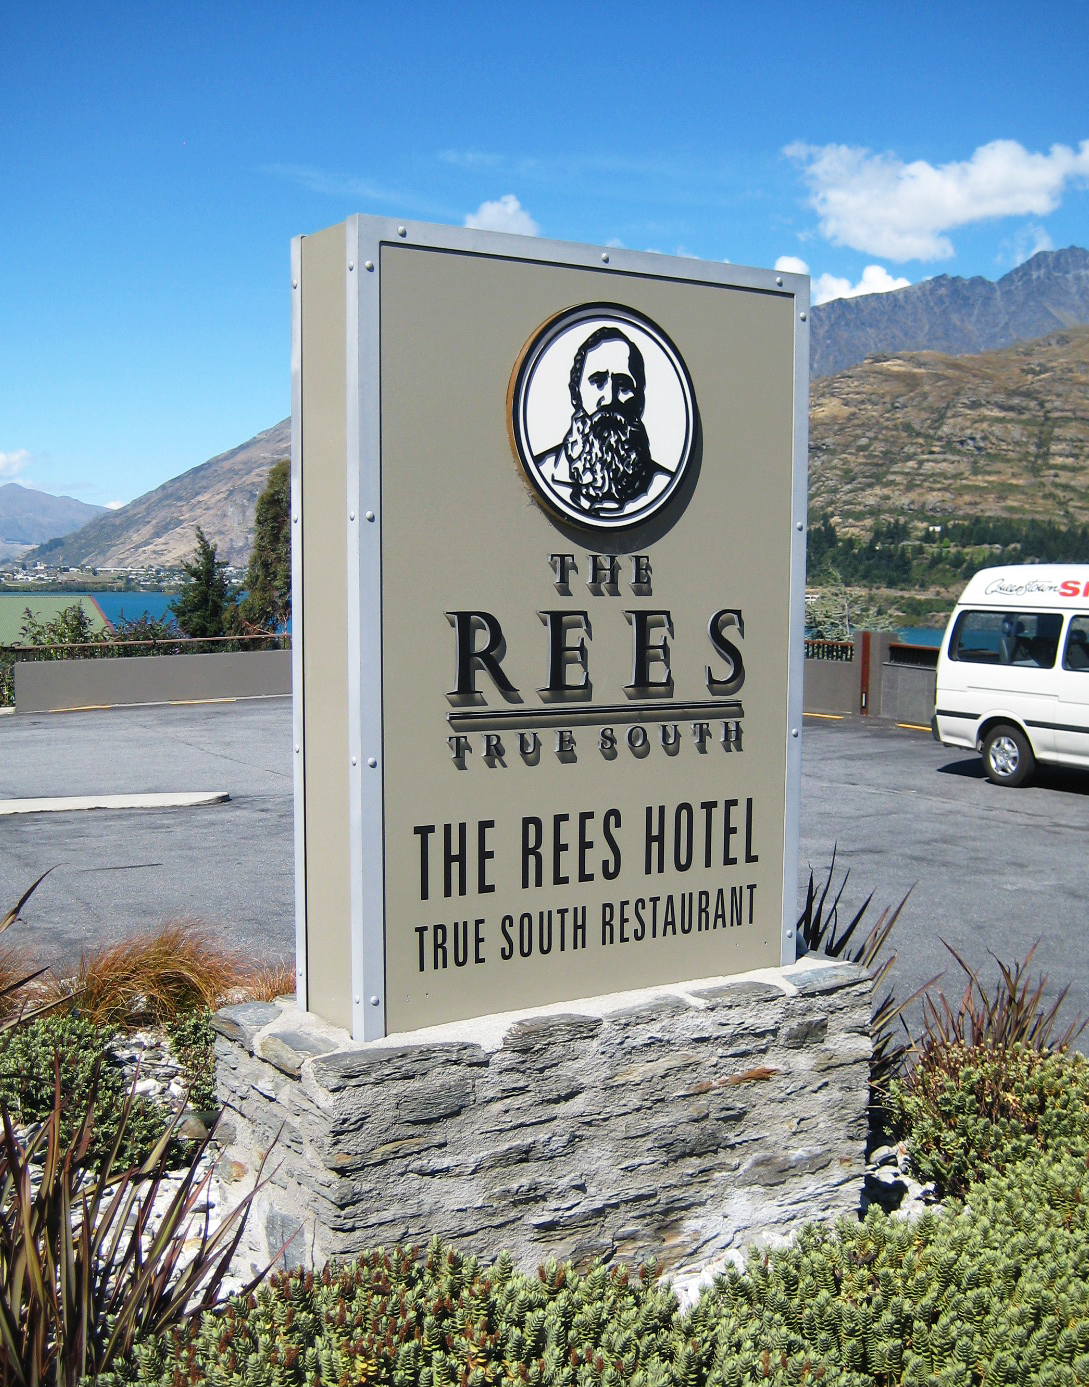 The Rees